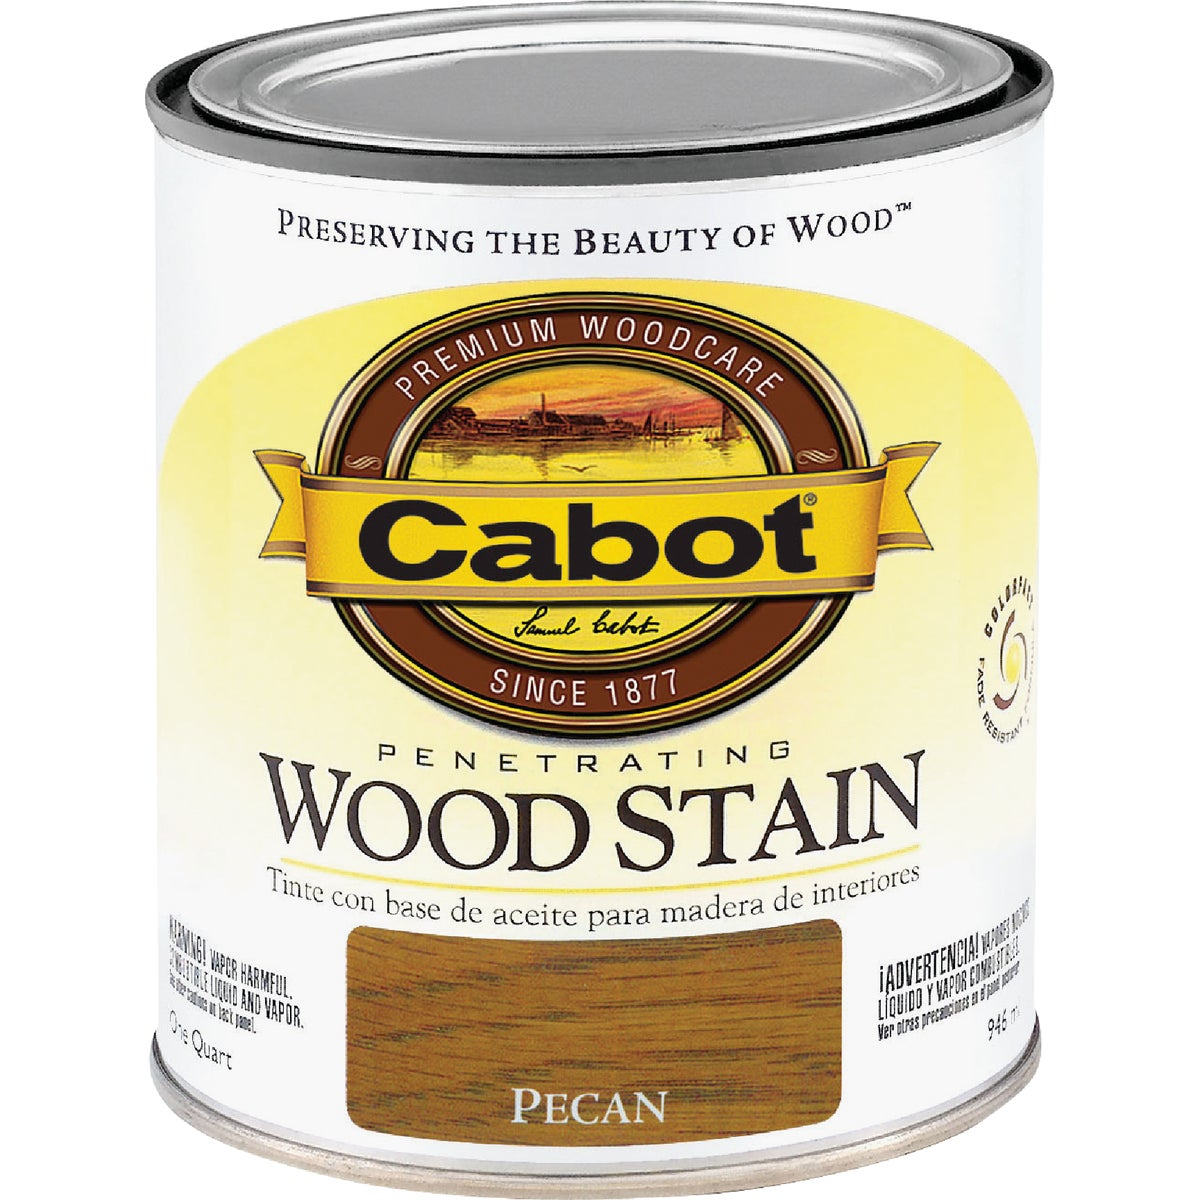 INT PECAN WOOD STAIN - 144.0008127.005 by Valspar Corp